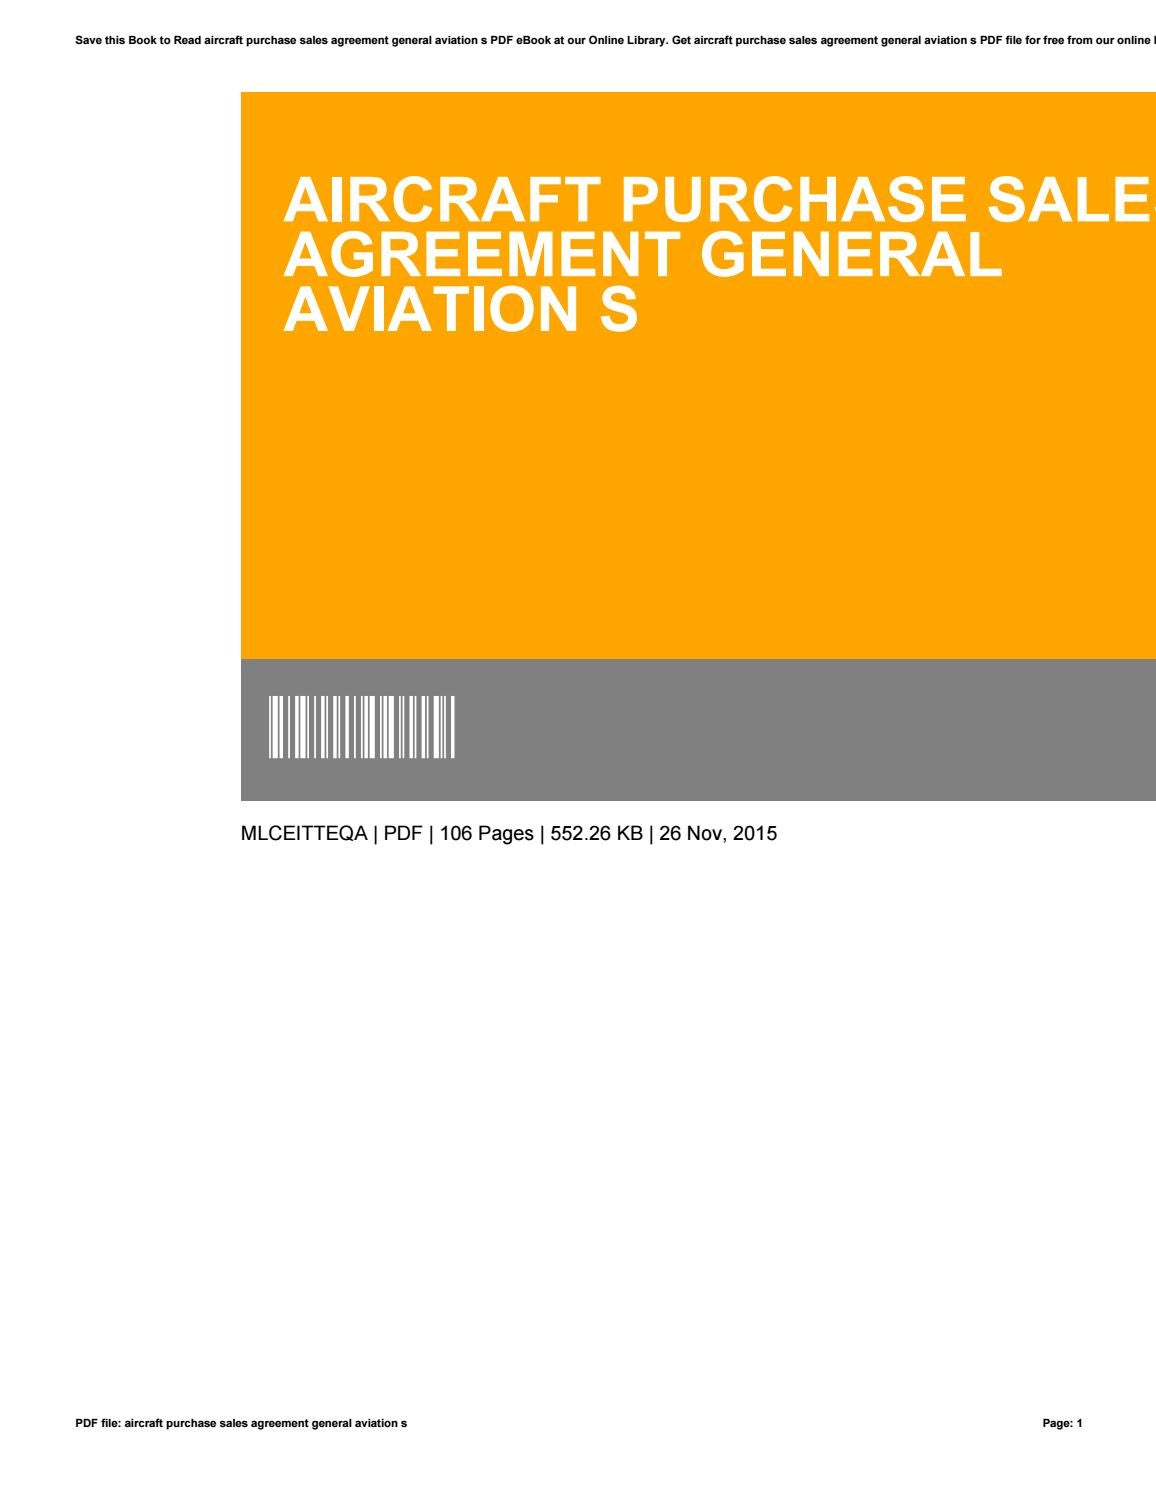 Aircraft Purchase Sales Agreement General Aviation S By Pagamenti2